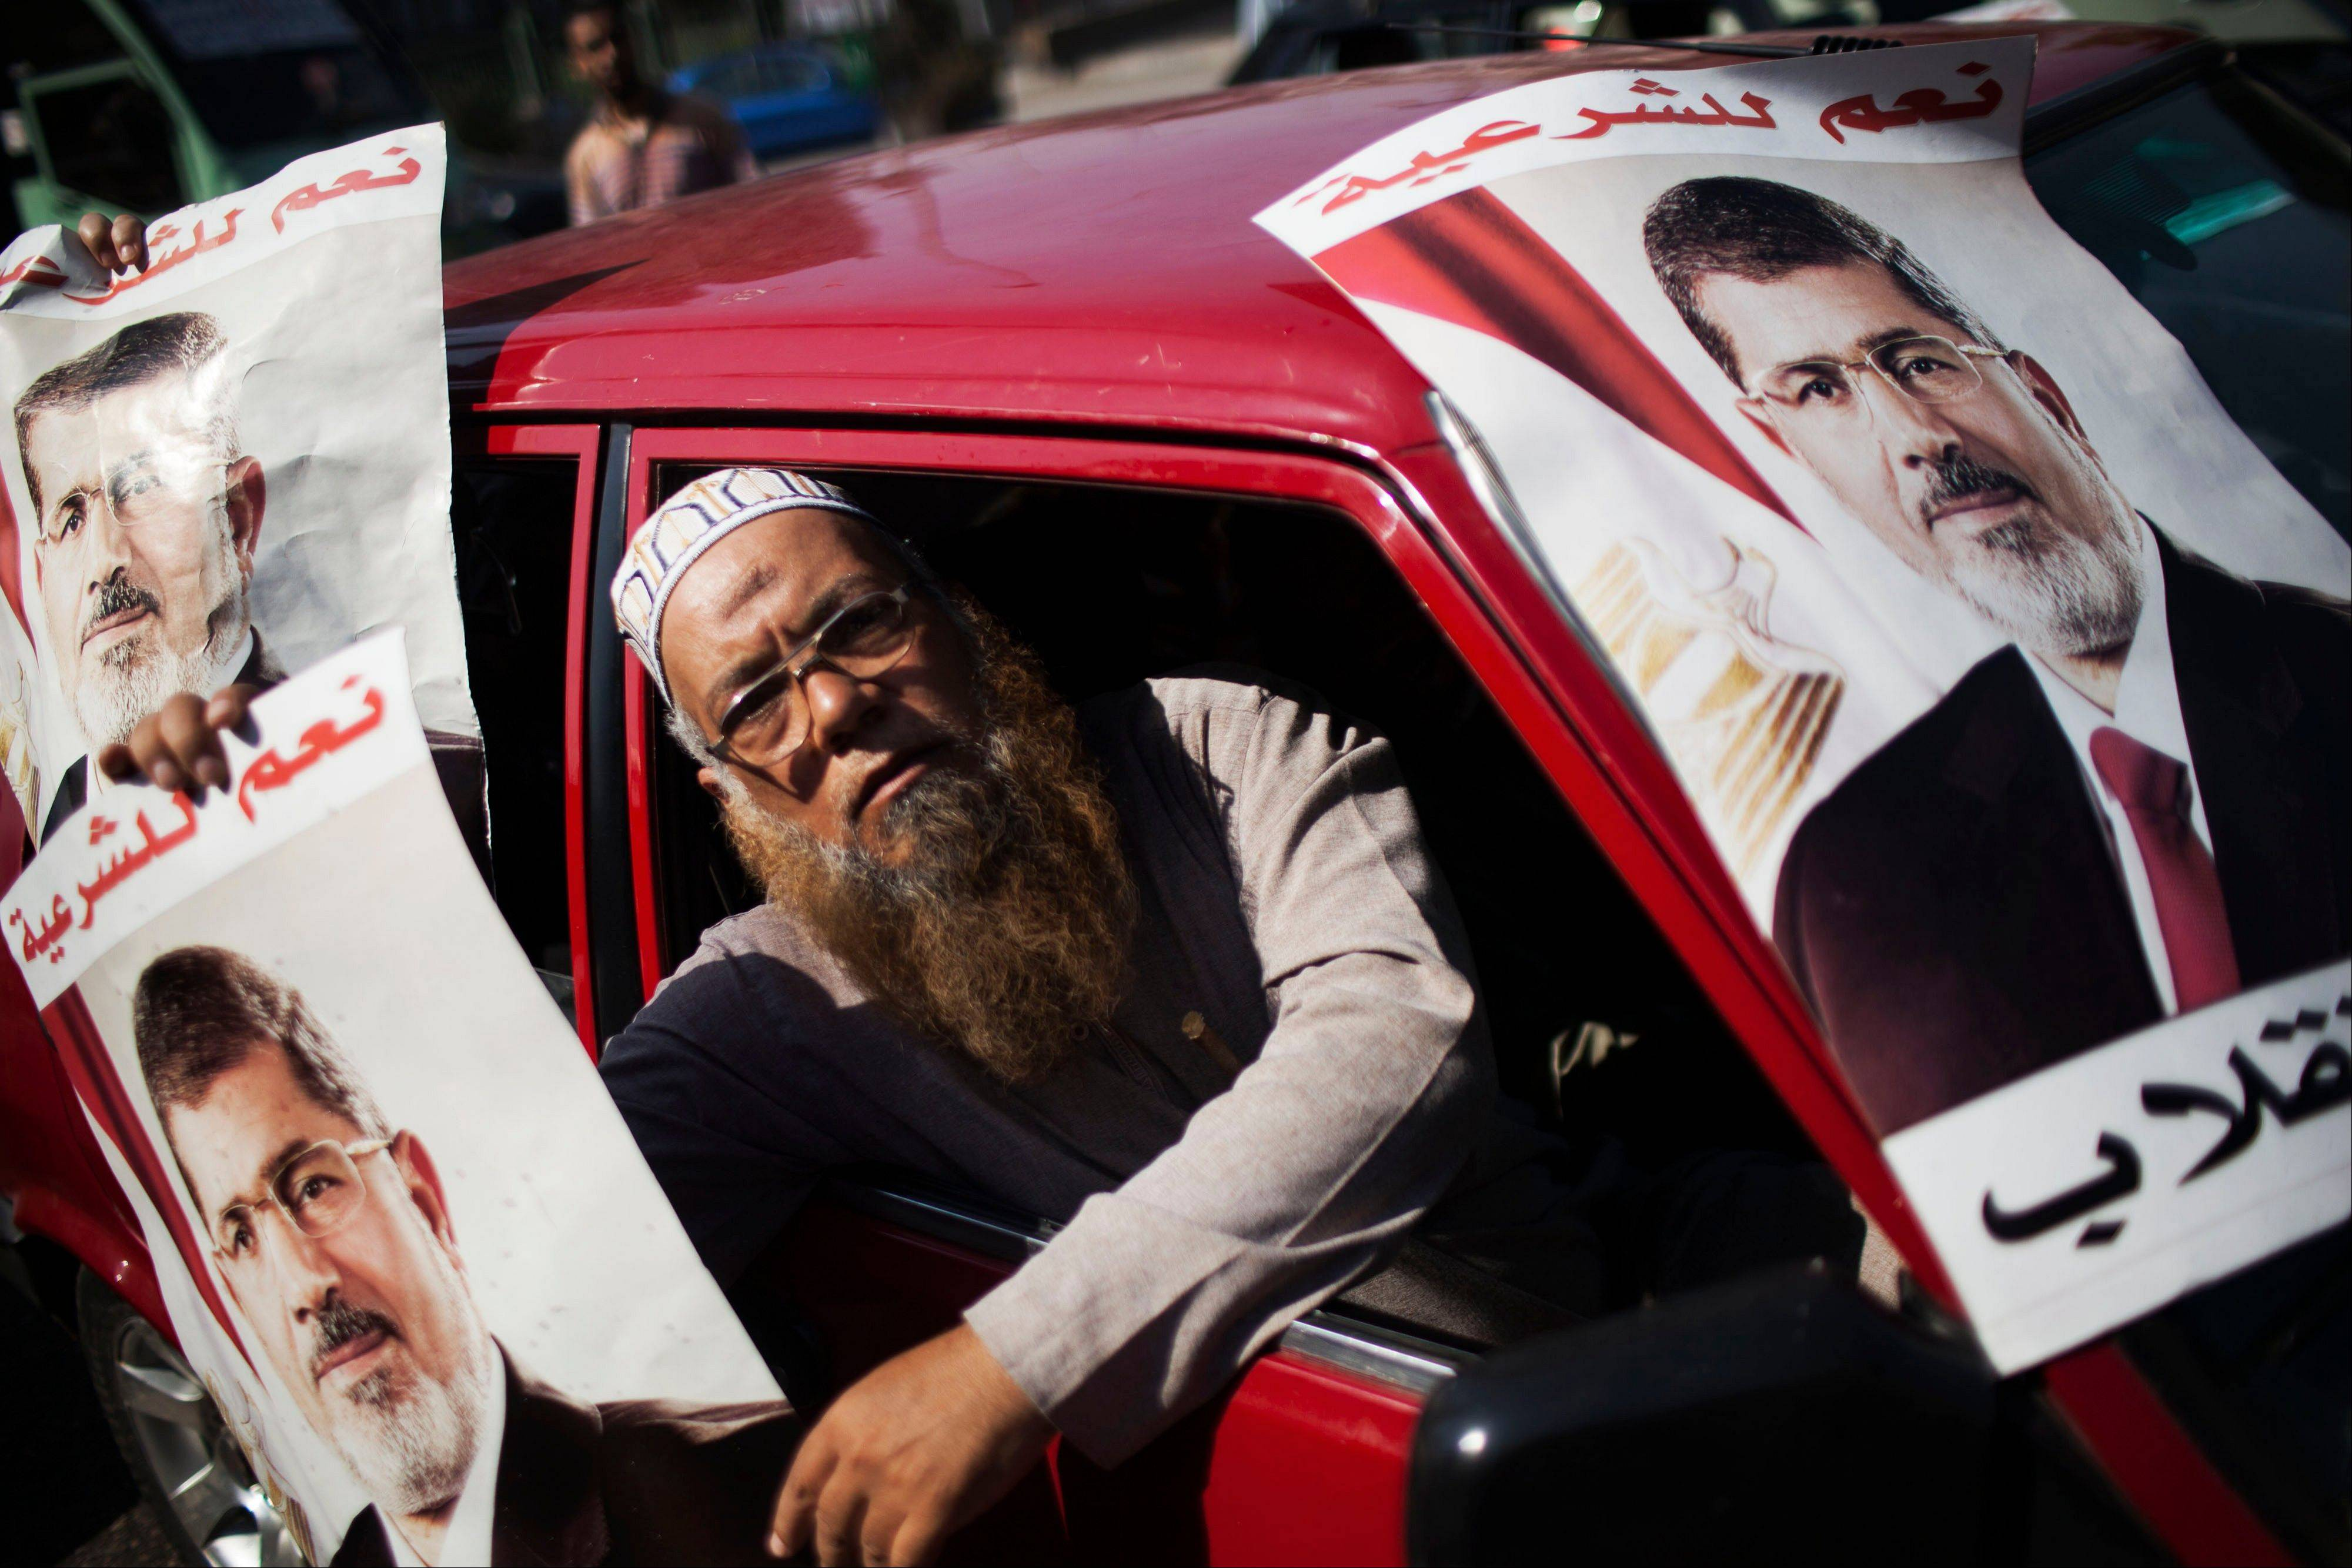 A supporter of Egypt�s ousted President Mohammed Morsi holds a banner Friday with Morsi�s image.